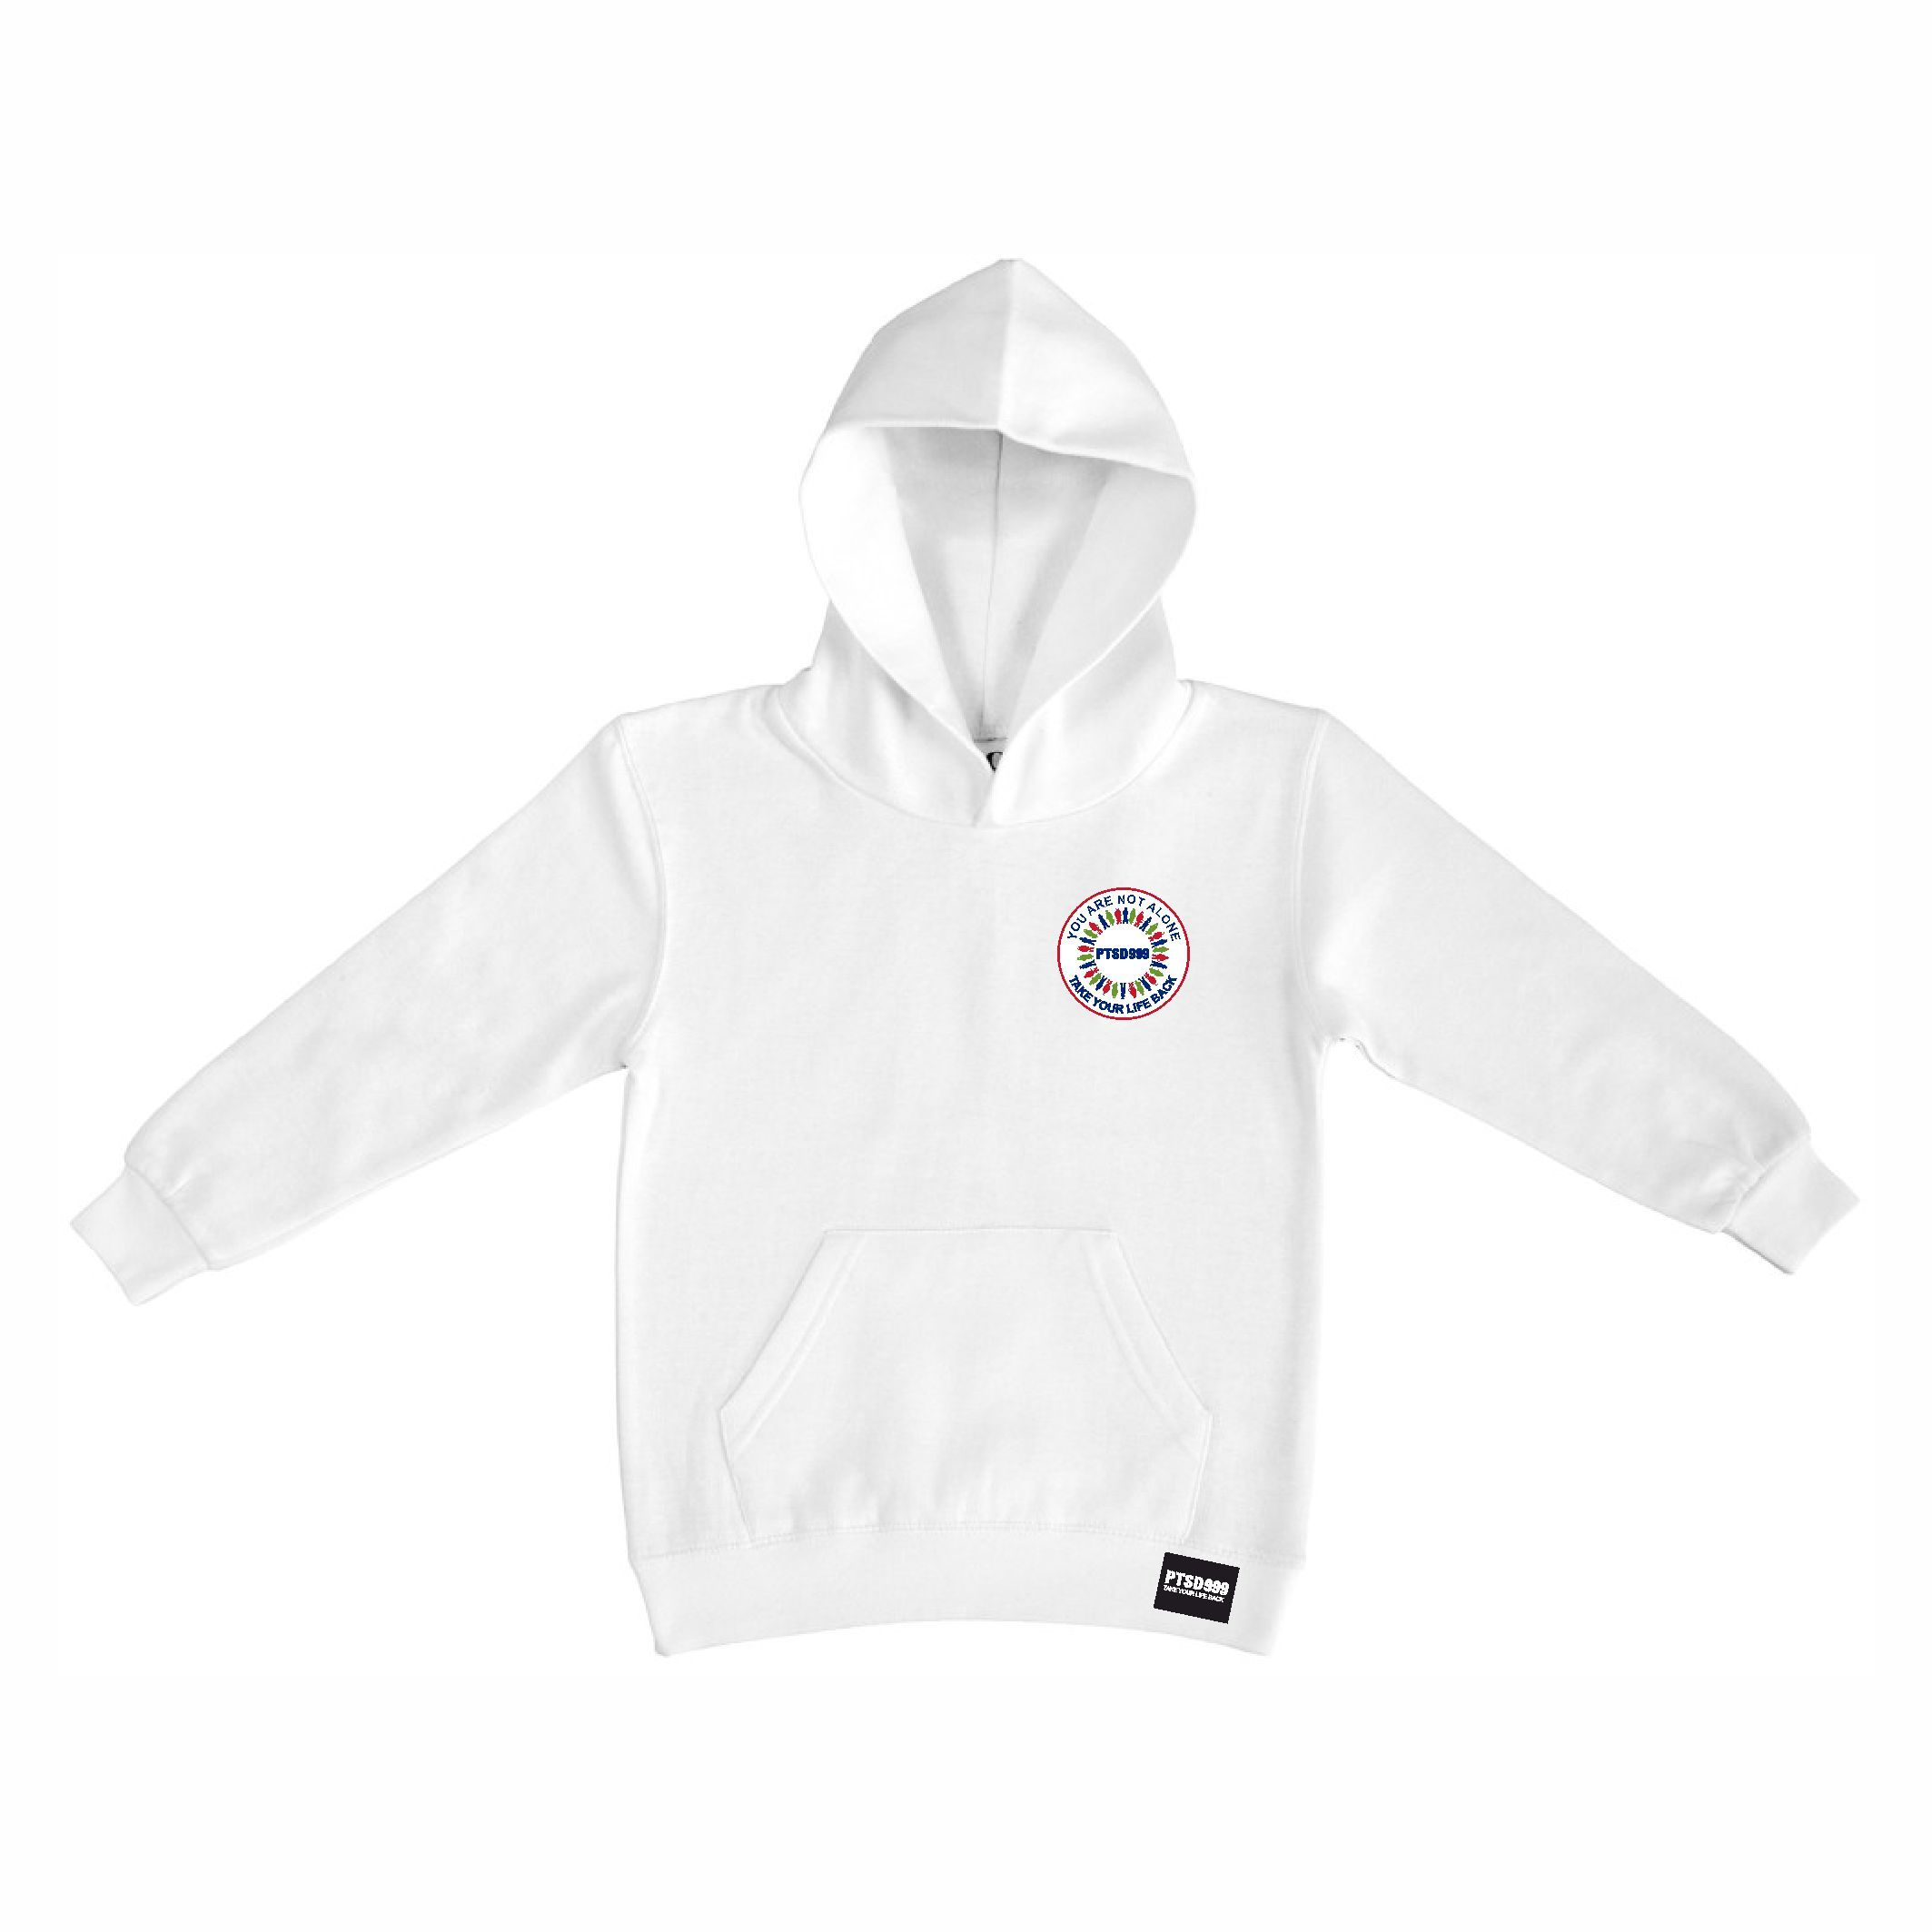 PTSD999- 'You Are Not Alone' Kids Hoodie